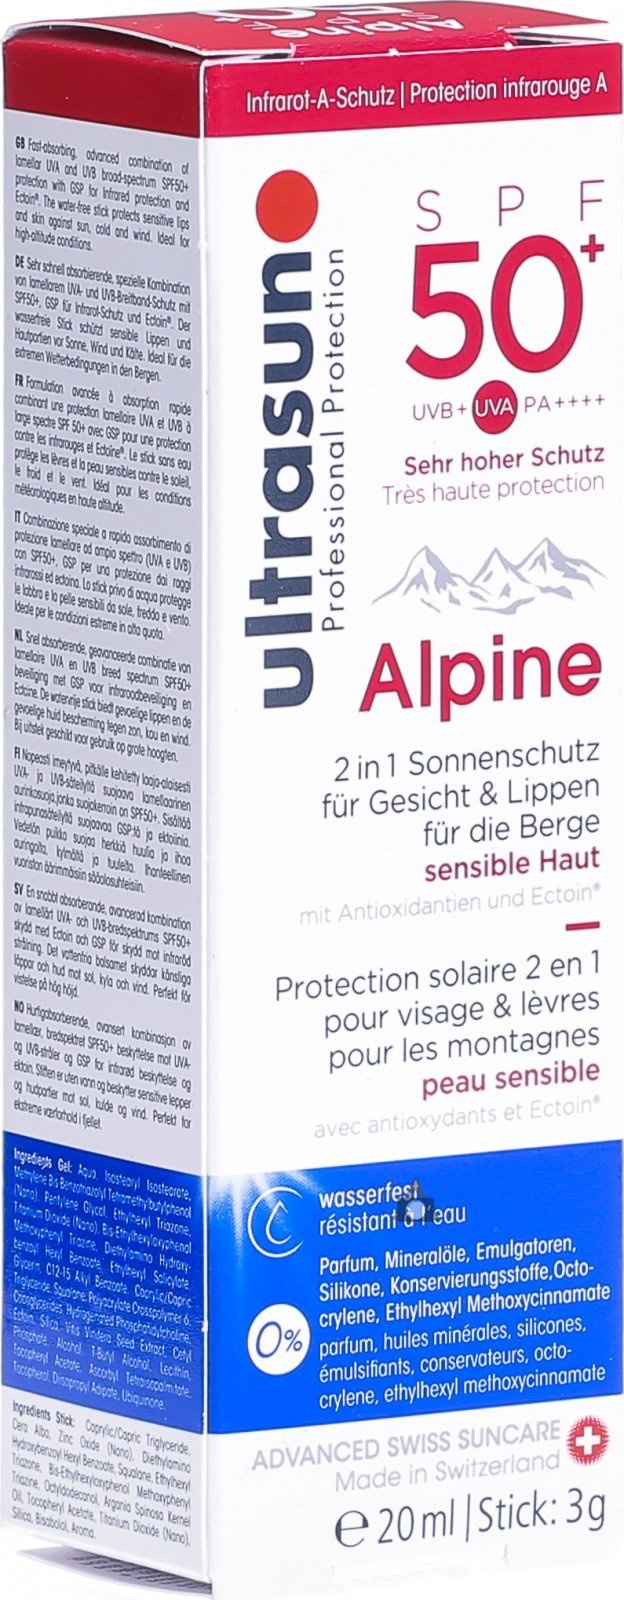 Ultrasun Ultrasun Alpine SPF 50+ 20ml